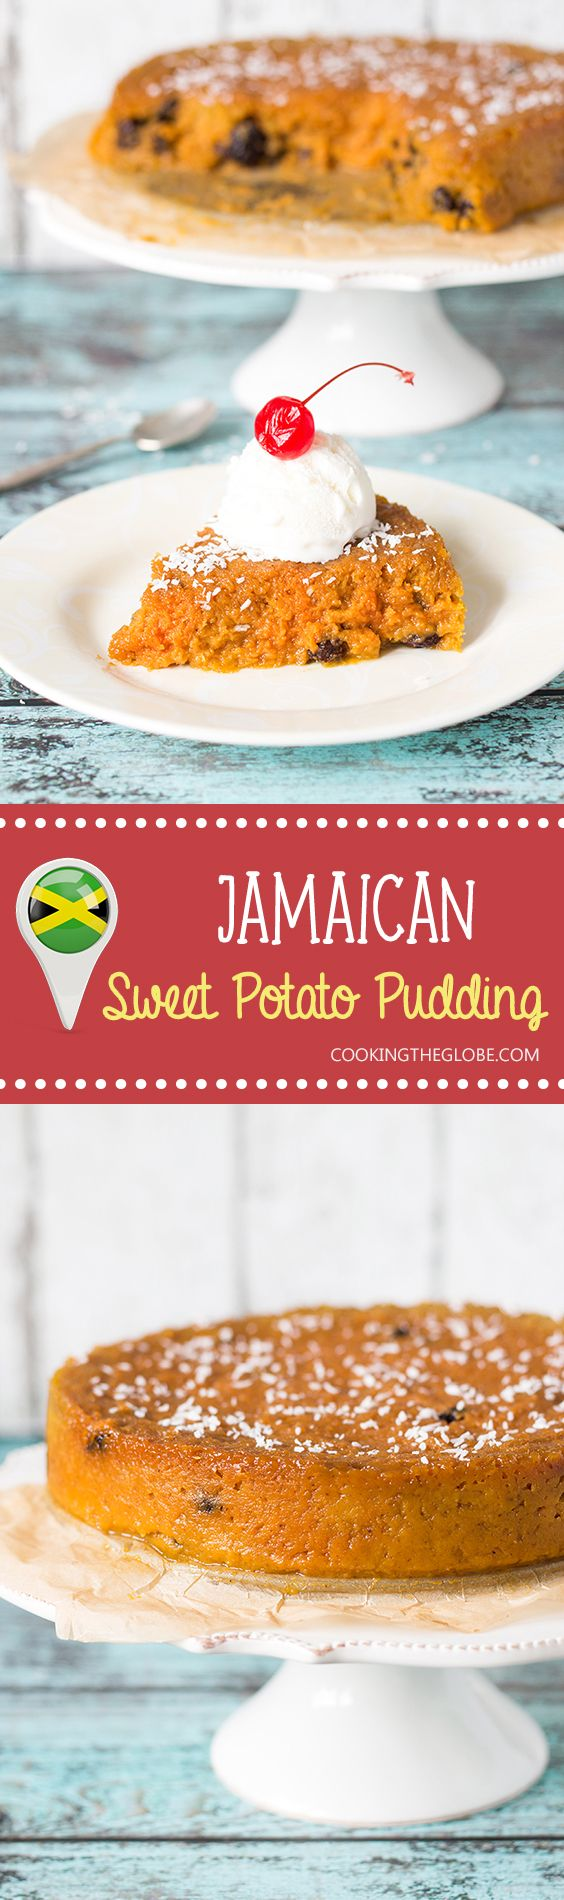 This Jamaican Sweet Potato Pudding or Pone is sweet, with a notes of cinnamon, nutmeg and vanilla!   cookingtheglobe.com